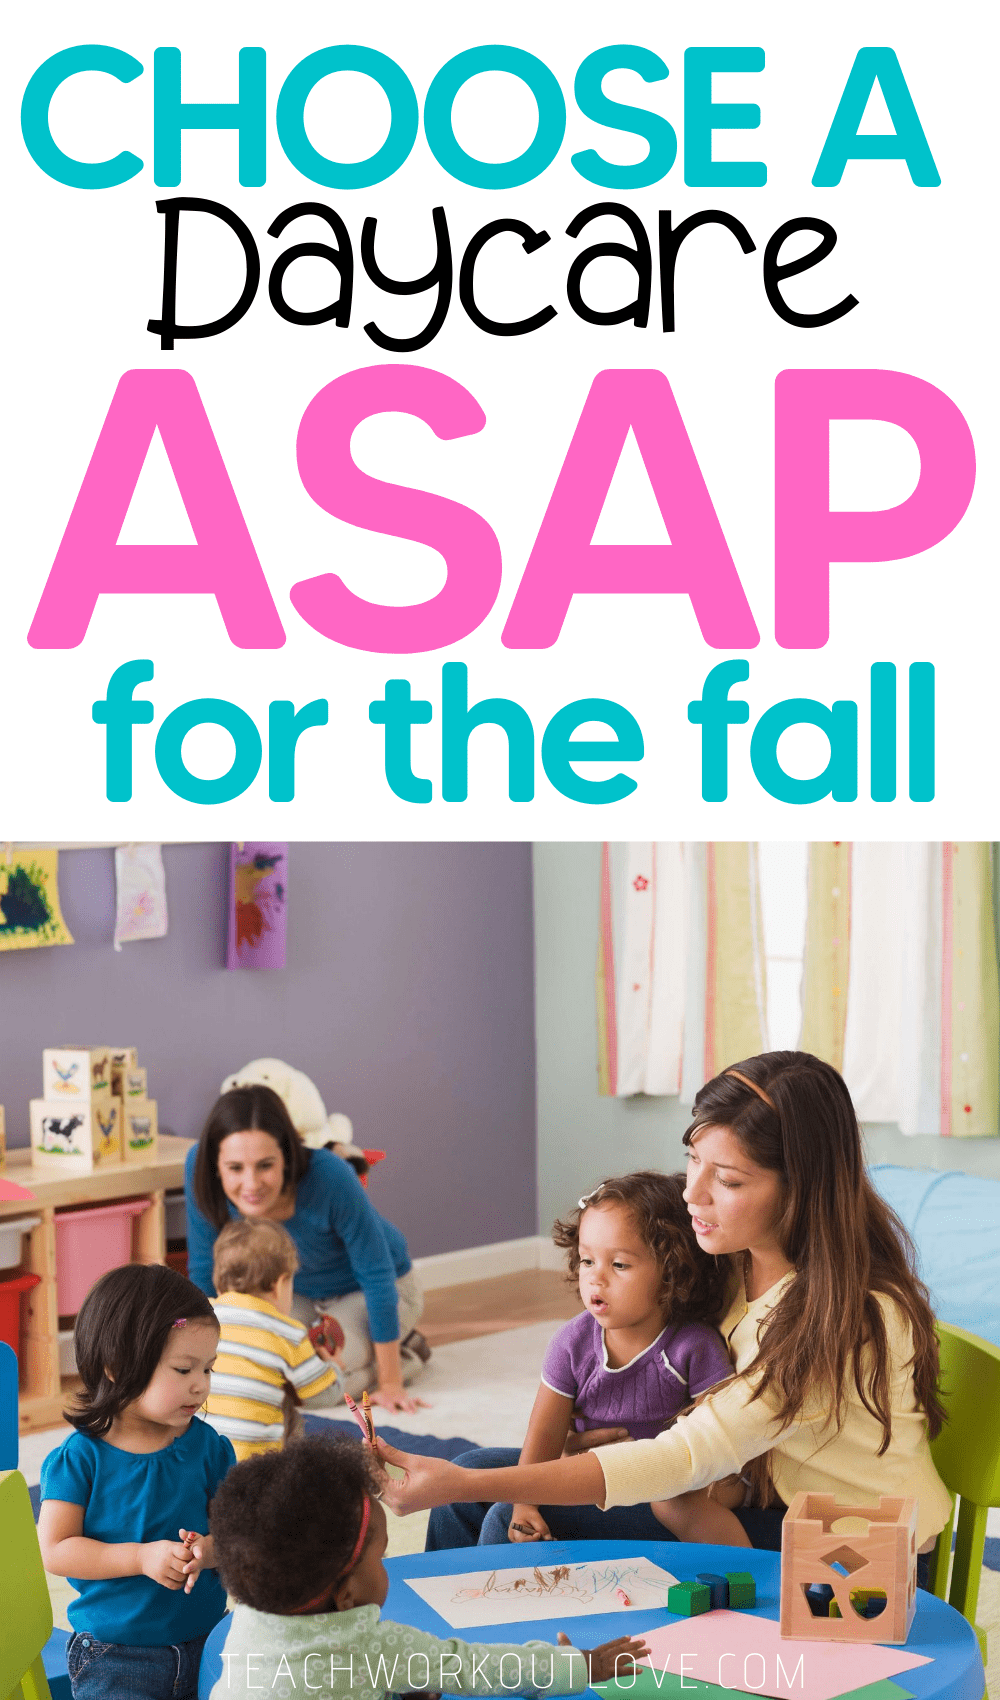 Choosing a daycare for your child is difficult! These 5 tips can help you find the best place when schools are closed in the fall.